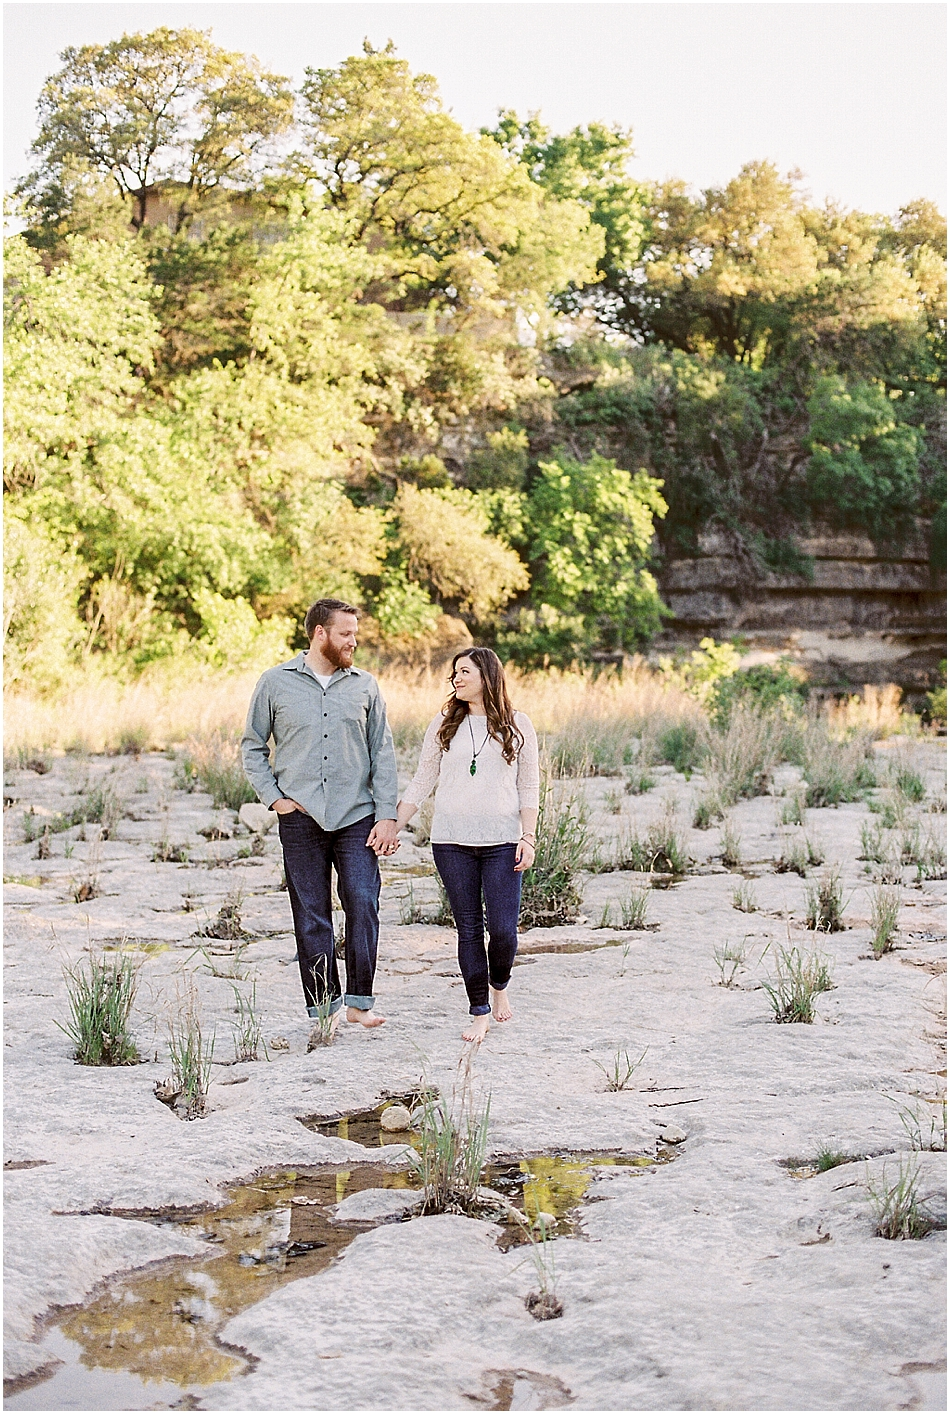 Brooke + Nick | Fine Art Creek Side Engagement | Film | Emilie Anne Photography-4.jpg